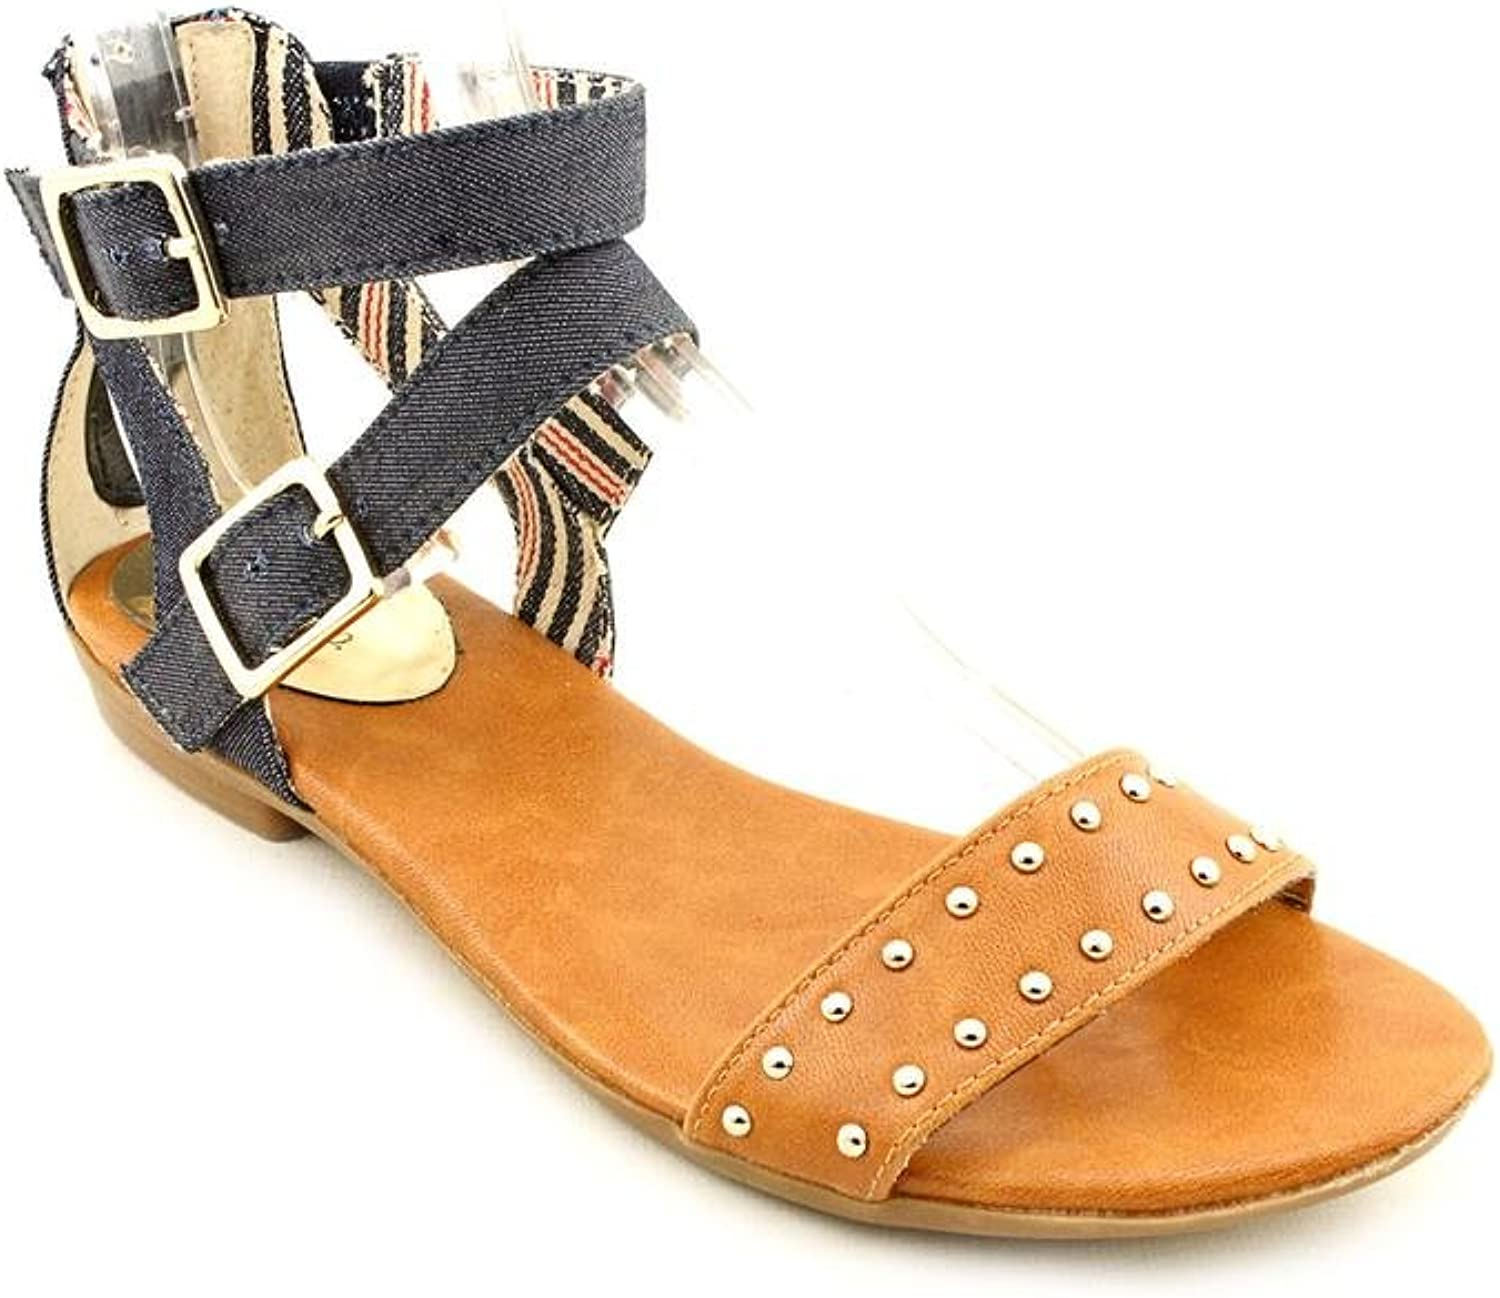 Style & Co. Henna Womens Size 9 Tan Open Toe Textile Dress Sandals shoes